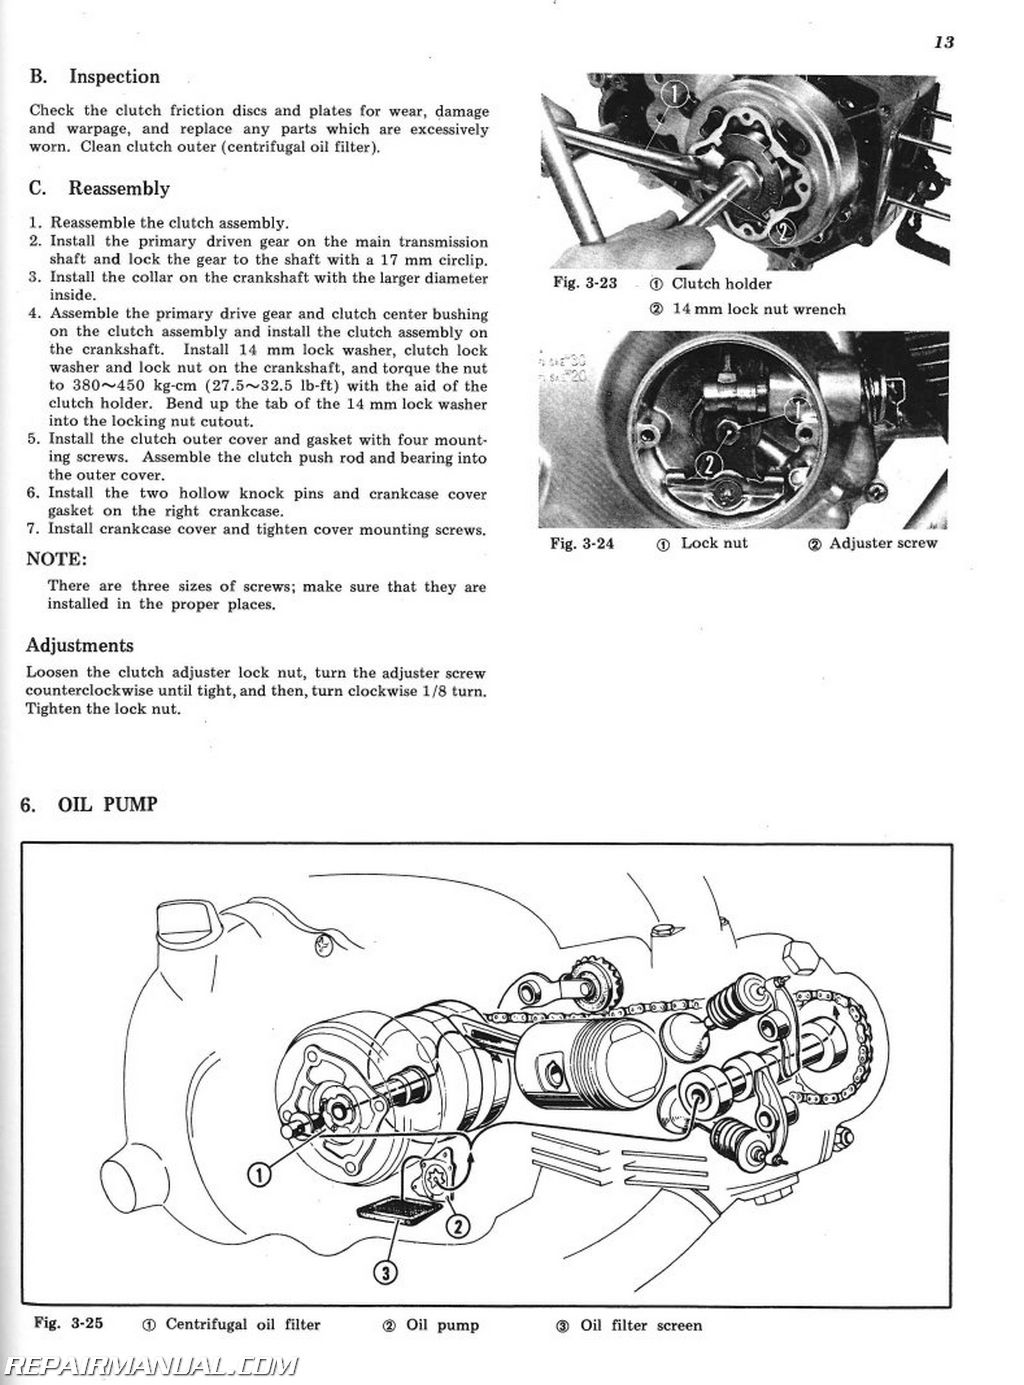 Honda 70 Wiring Diagram Trx Page 4 And Schematics Diagrams Source 1971 1976 Sl70 Xl70 Motorcycle Service Manual Rh Repairmanual Com Custom 1985